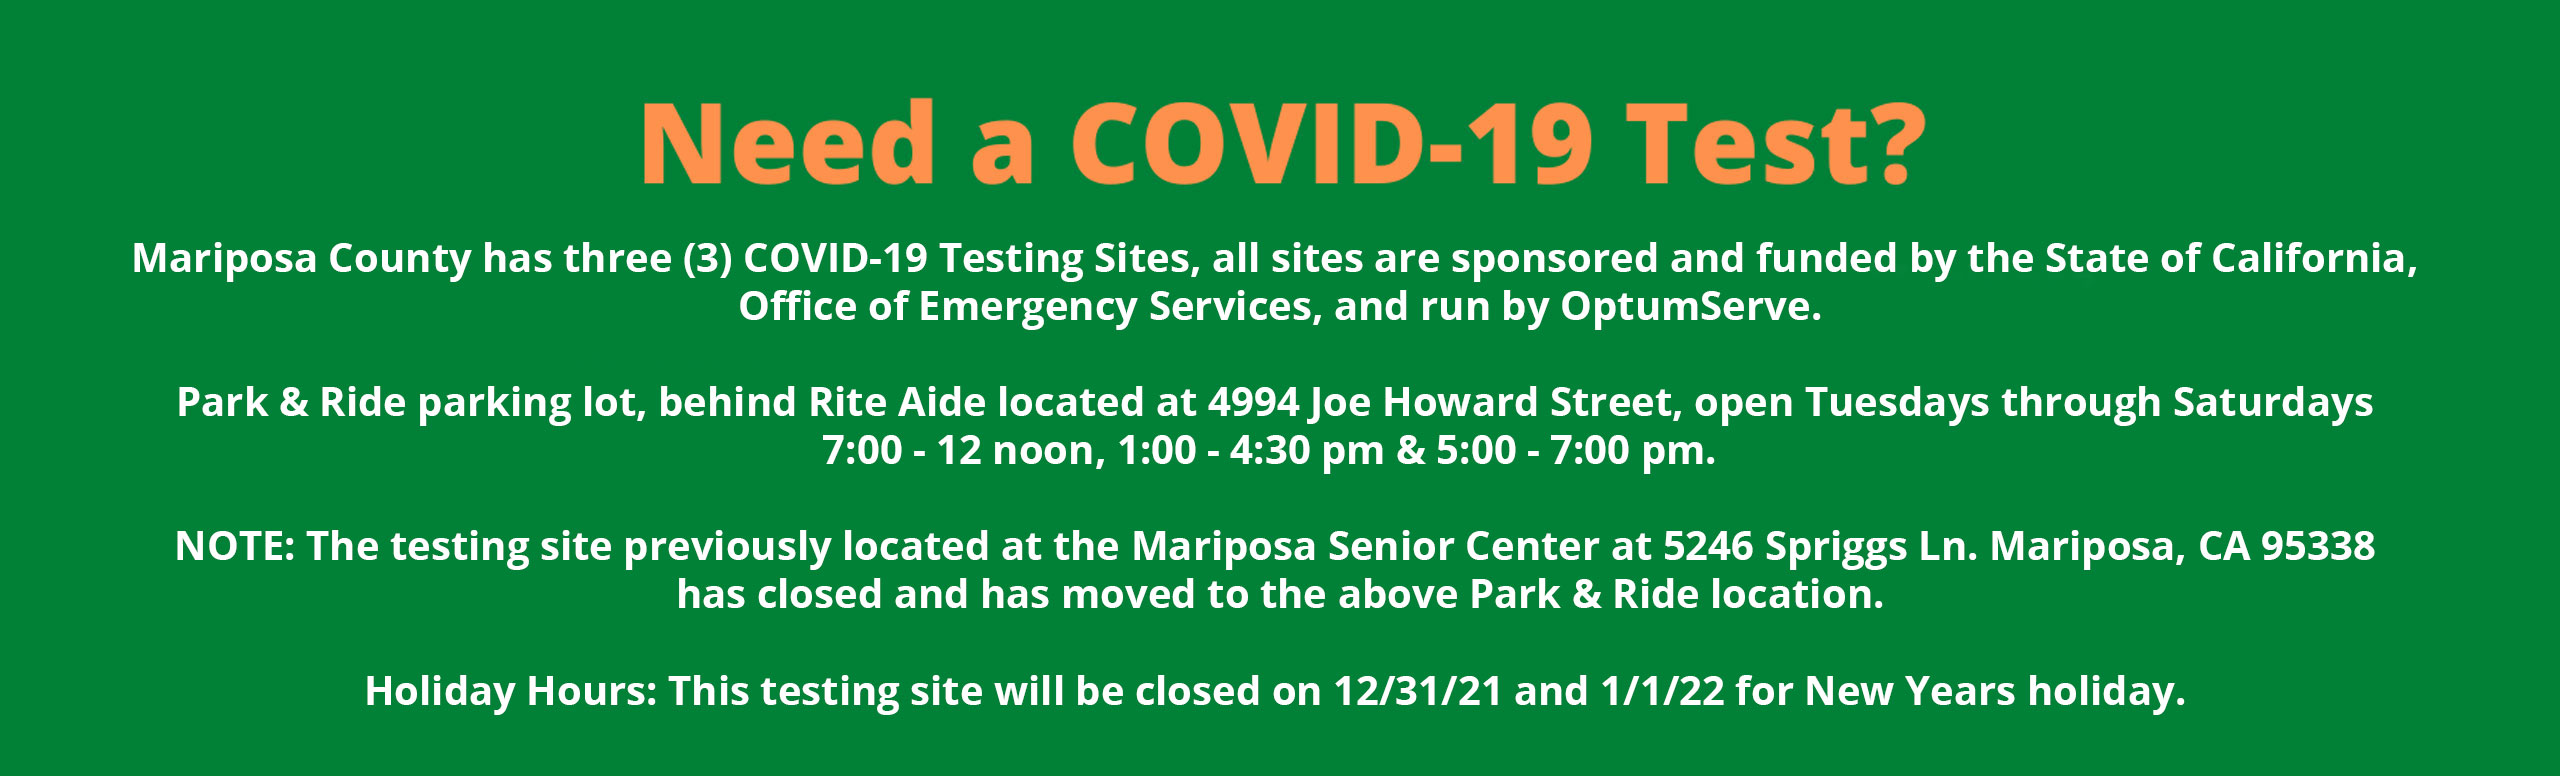 Banner that says: Need a COVID-19 Test?  For a FREE COVID-19 test, visit the LHI testing site at the Mariposa Senior Center, 5246 Spriggs Ln. Mariposa, CA 95338 open Tuesday-Saturdays 7:00-11:00 am. 1:00-4:00pm, & 5:00-7:00pm.   If you are experiencing a medical emergency, call 911 or visit our emergency department.